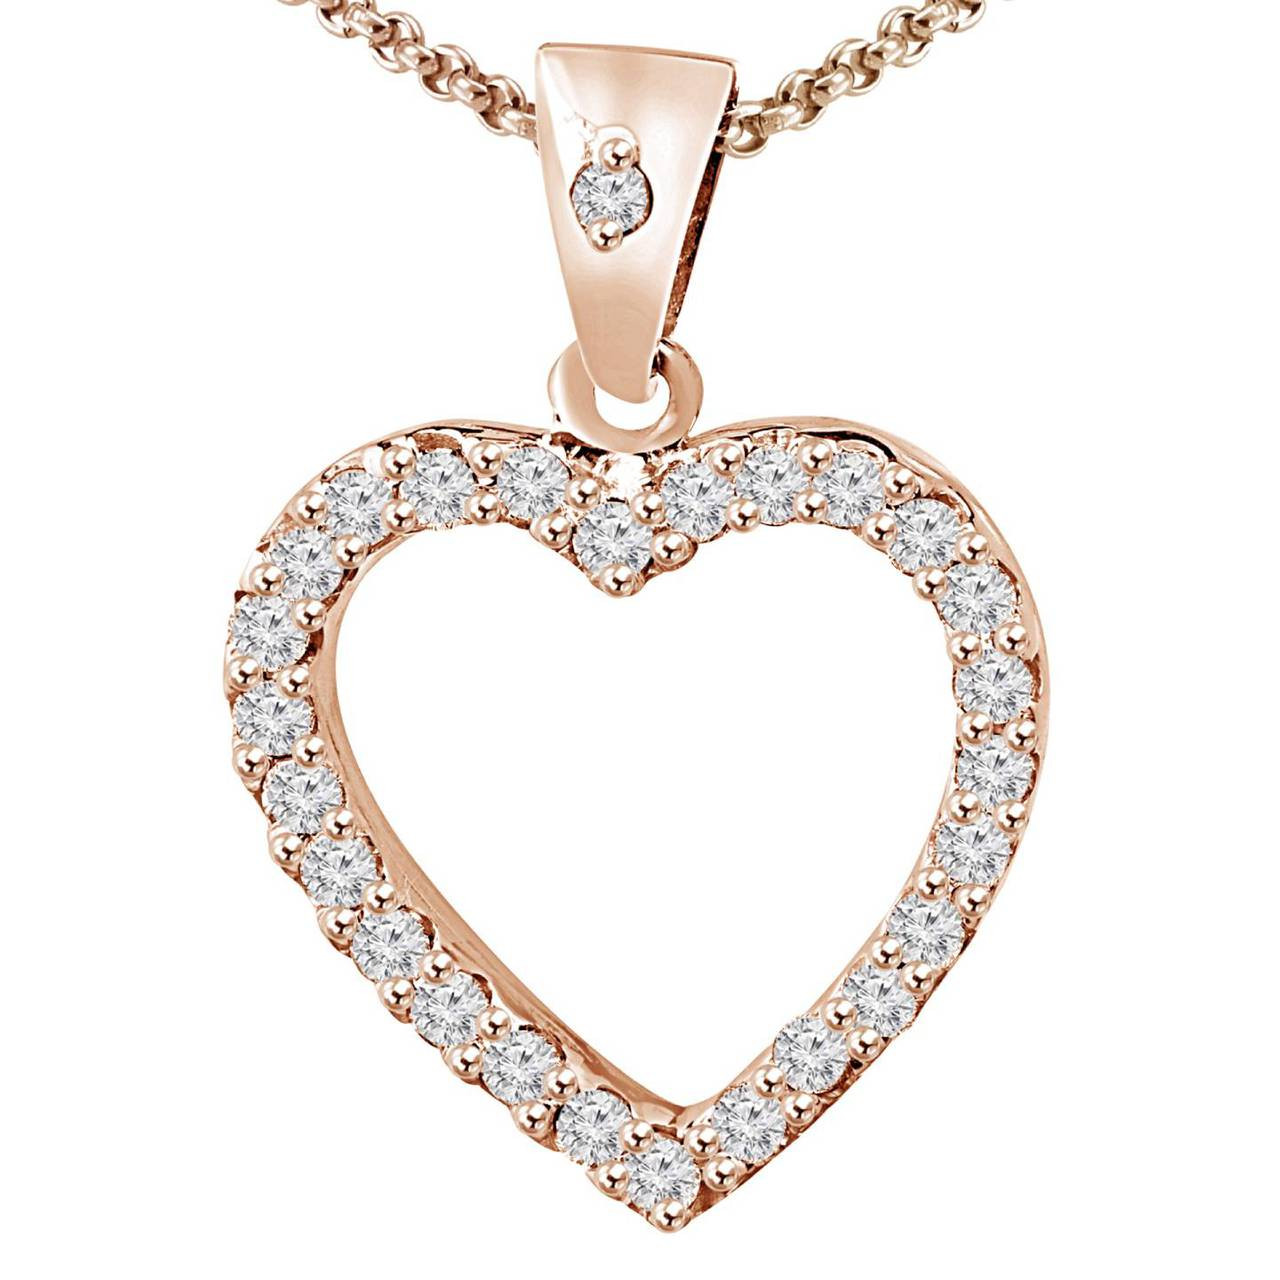 products shape faulhaber diamond works heart jewelry shaped cutting